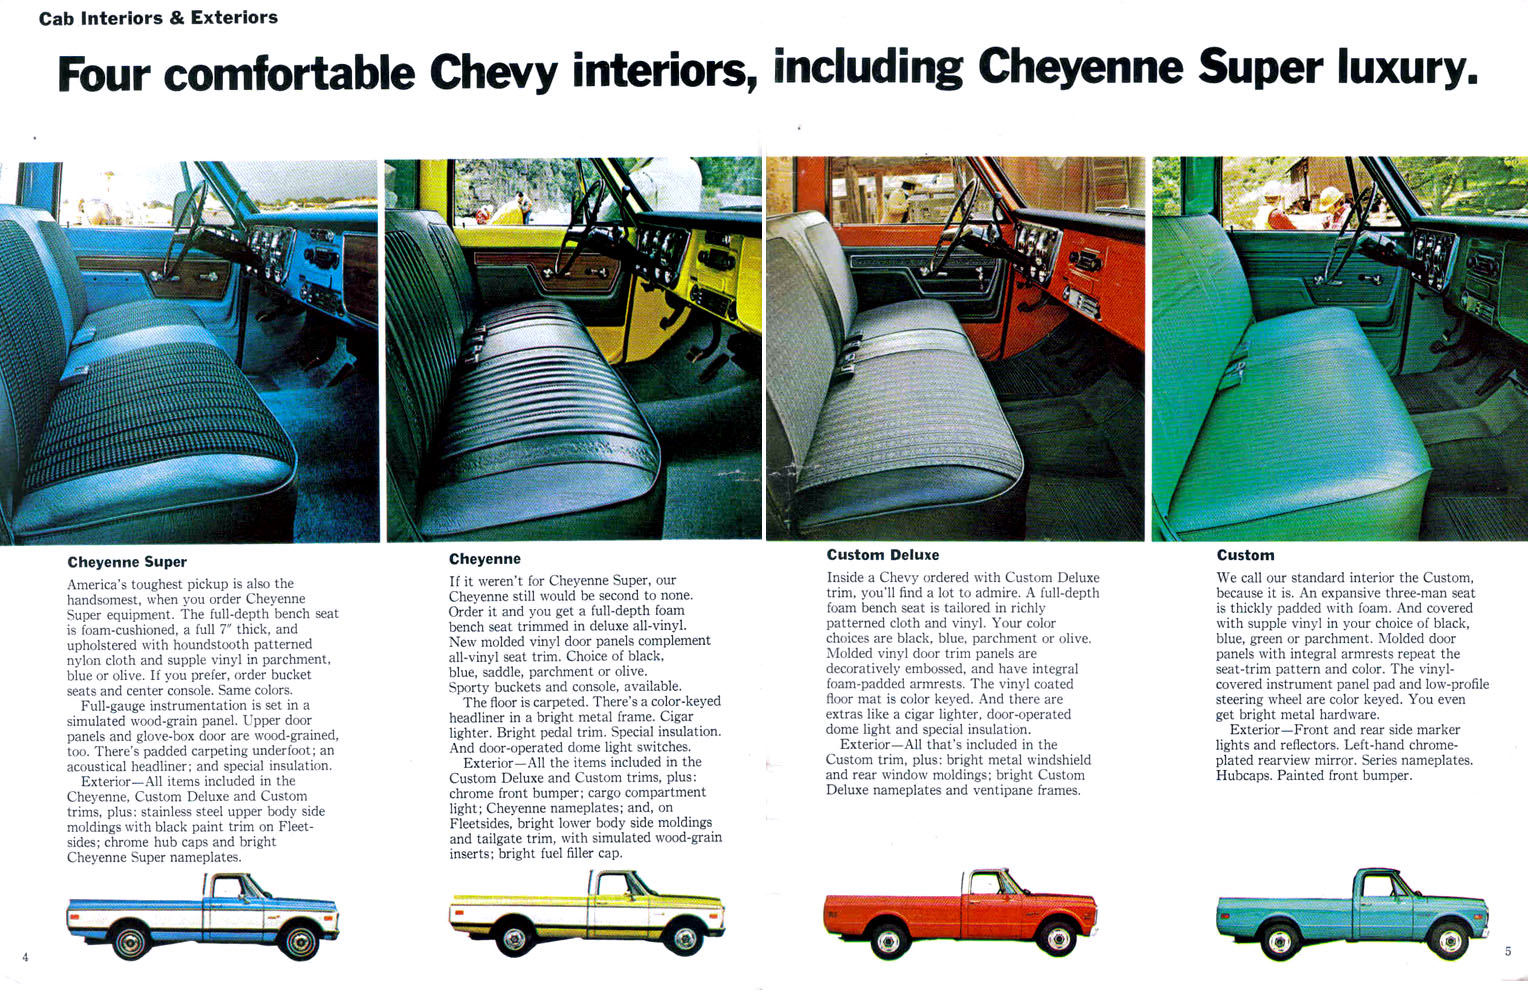 All Chevy 1972 chevrolet cheyenne super : How to tell difference between cheyenne,super and custom? - The ...